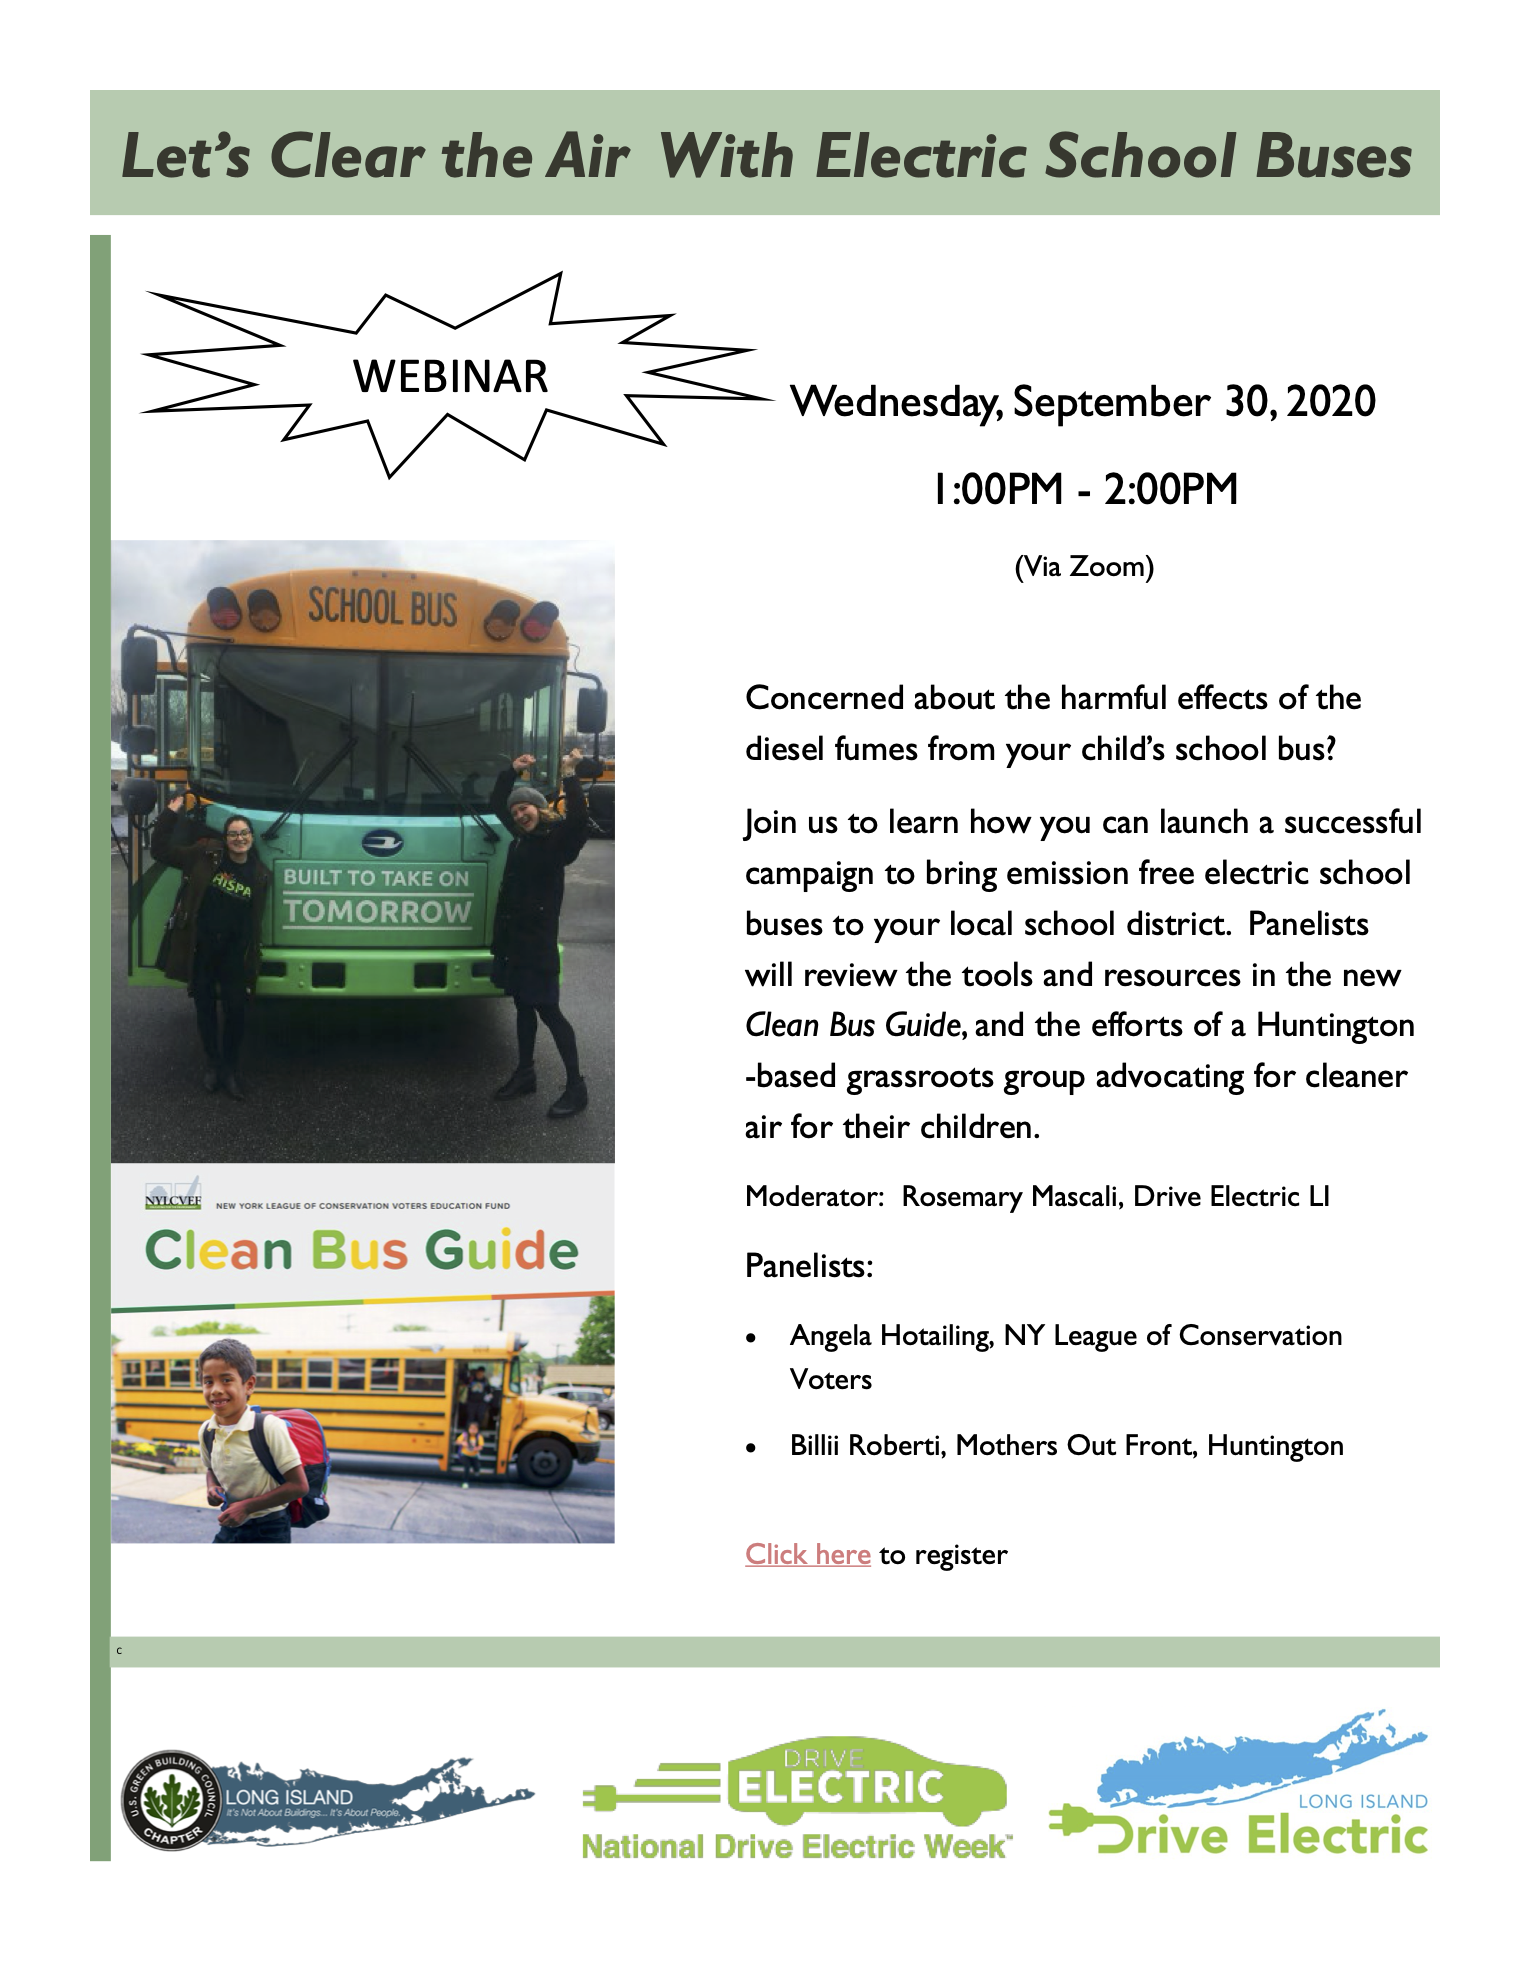 Let_s%20Clear%20the%20Air%20With%20Electric%20School%20Buses%20Flyer%20pdf.png